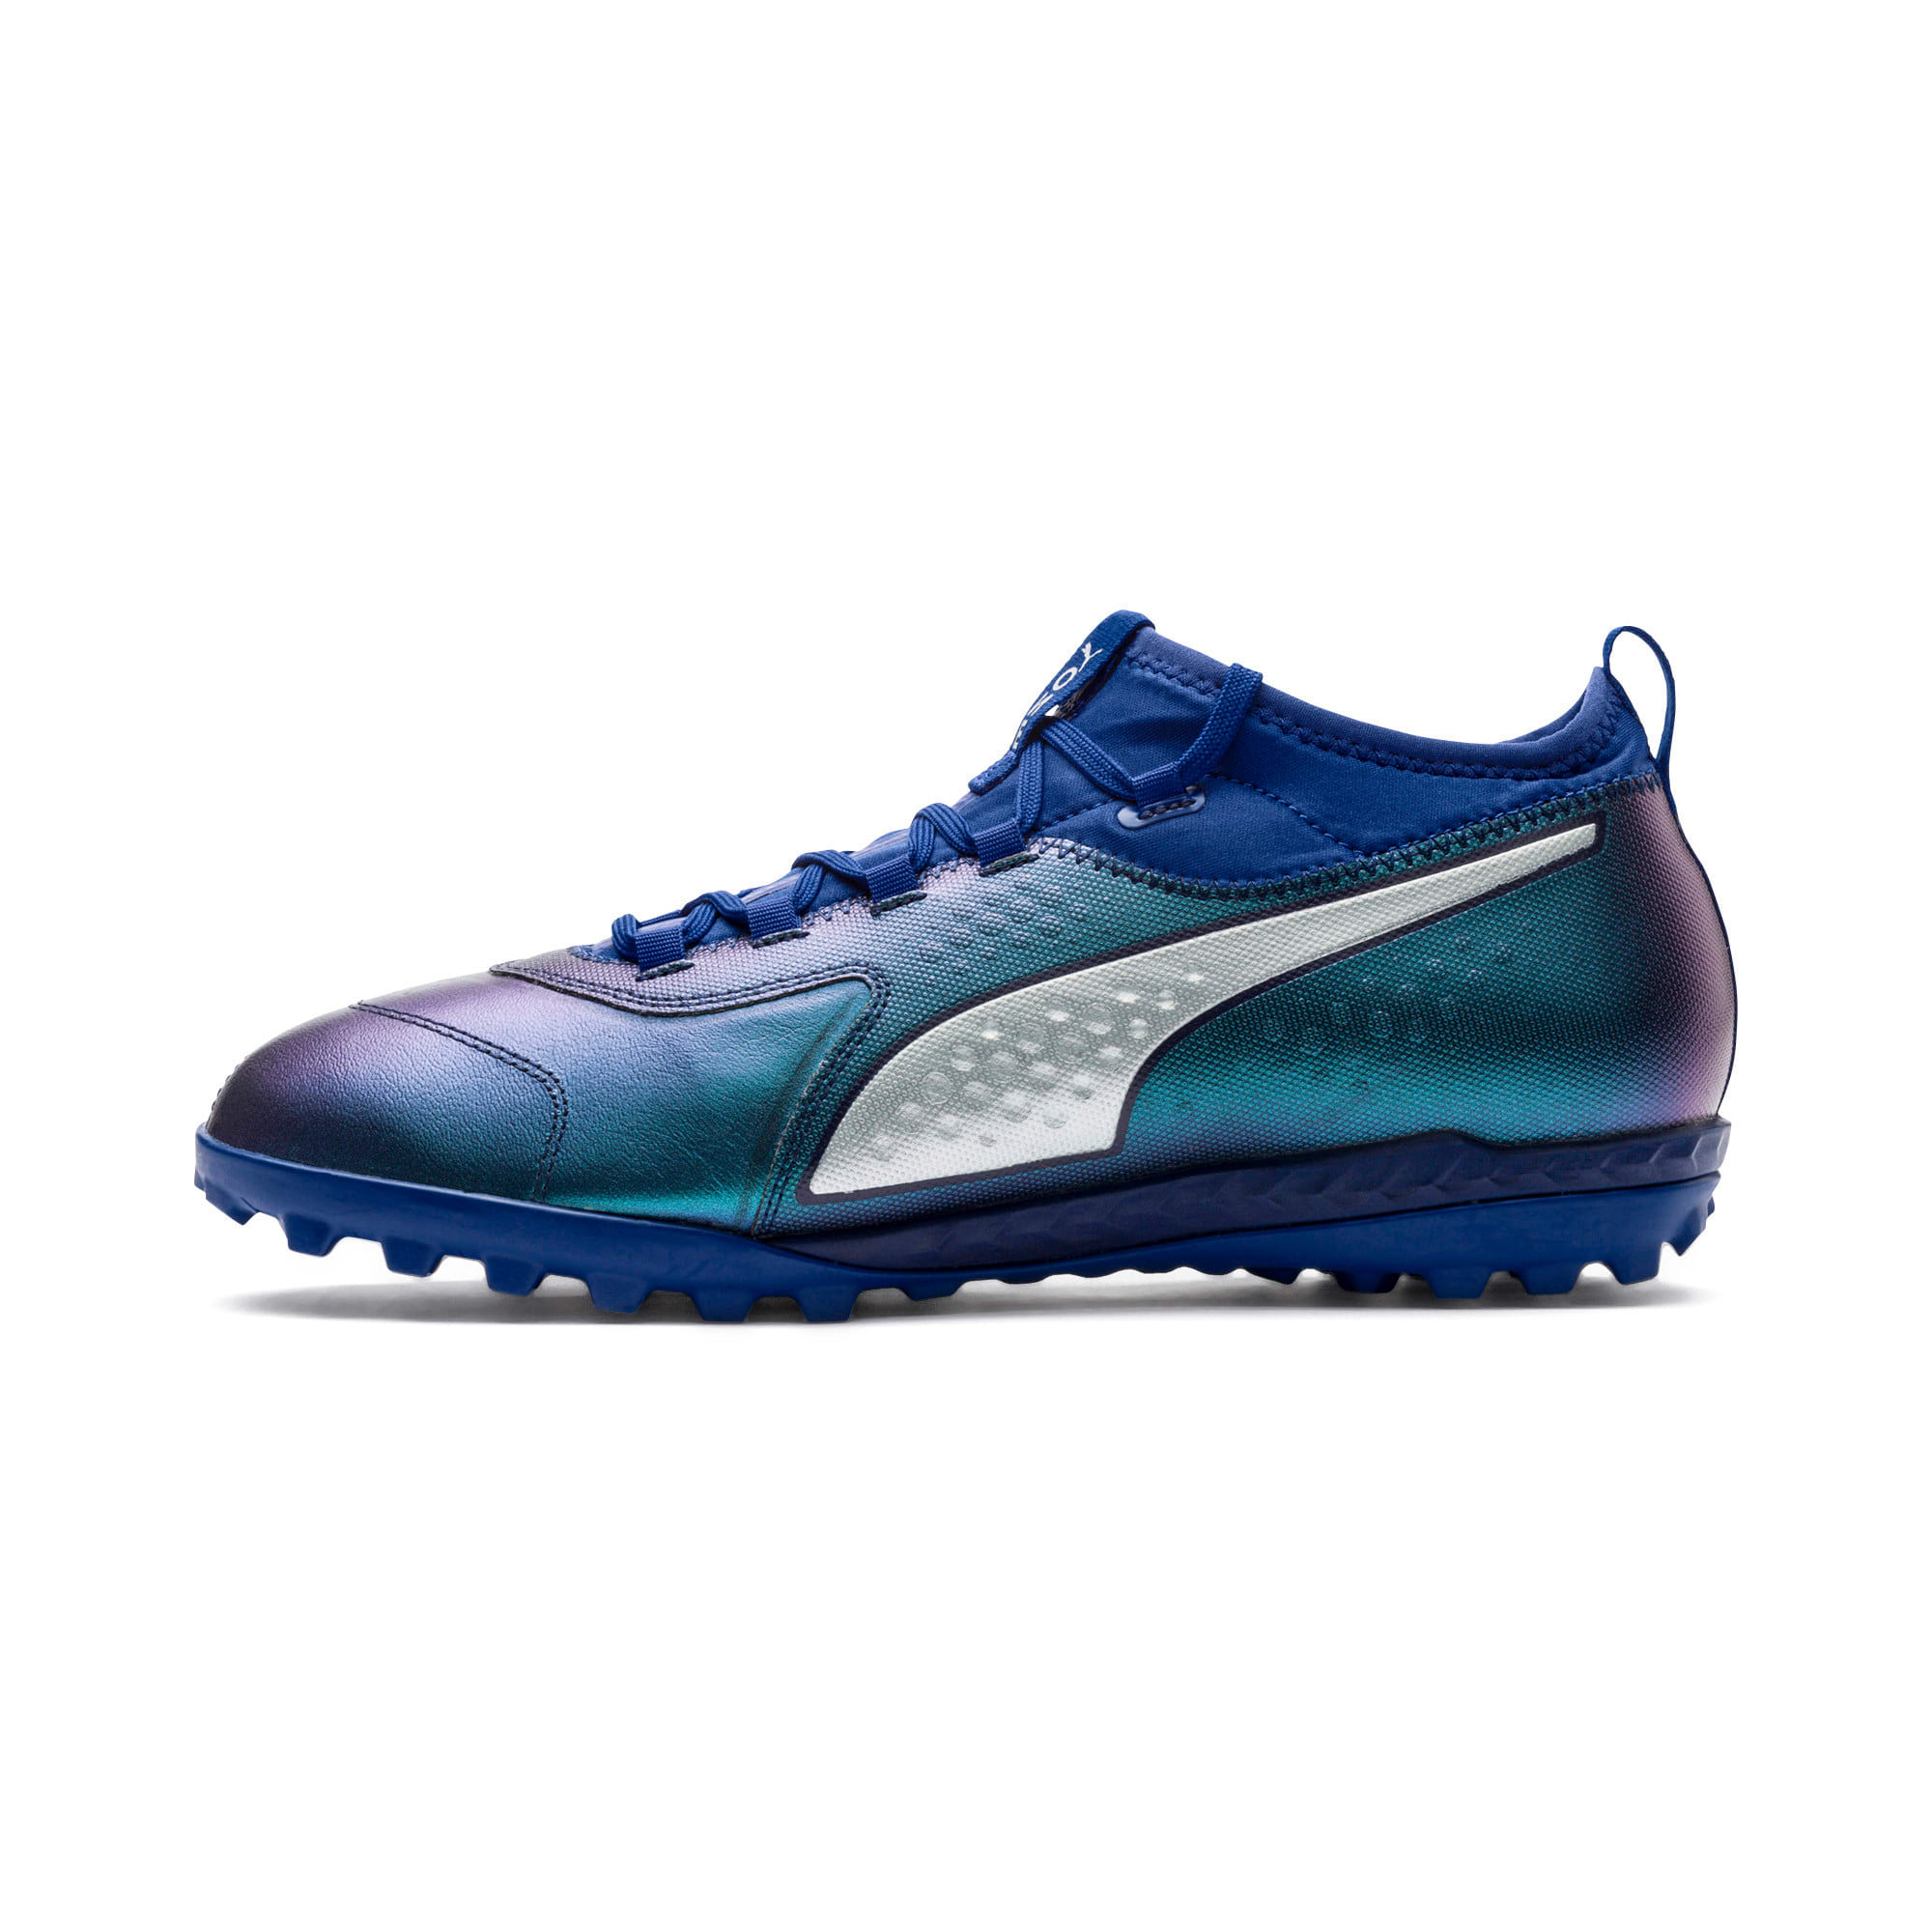 Thumbnail 1 of PUMA ONE 3 TT Men's Soccer Shoes, Sodalite Blue-Silver-Peacoat, medium